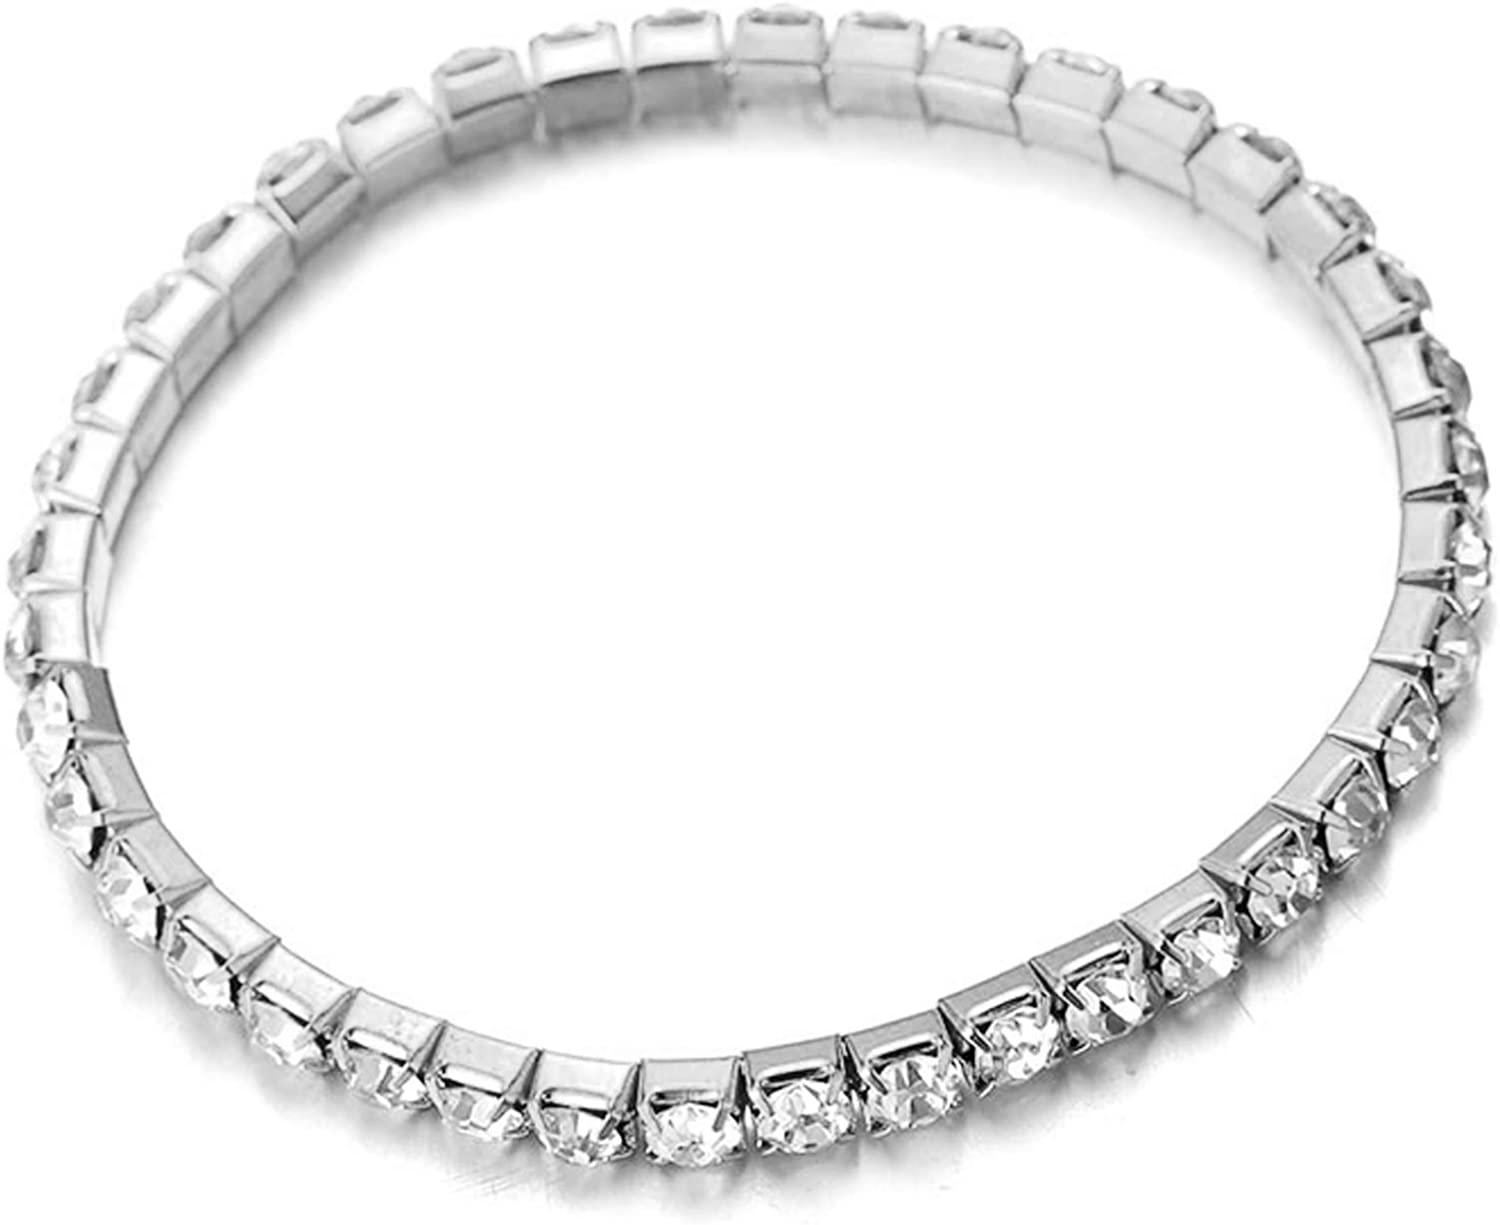 Halukakah ● Super Bling ● Womens 18k Real Gold//Platinum Plated Tennis Anklet Bracelet Elastic Dense Clear//Multicolor Crystal Diamond Set 1-5 Row Luxury Wedding Party with Free Giftbox